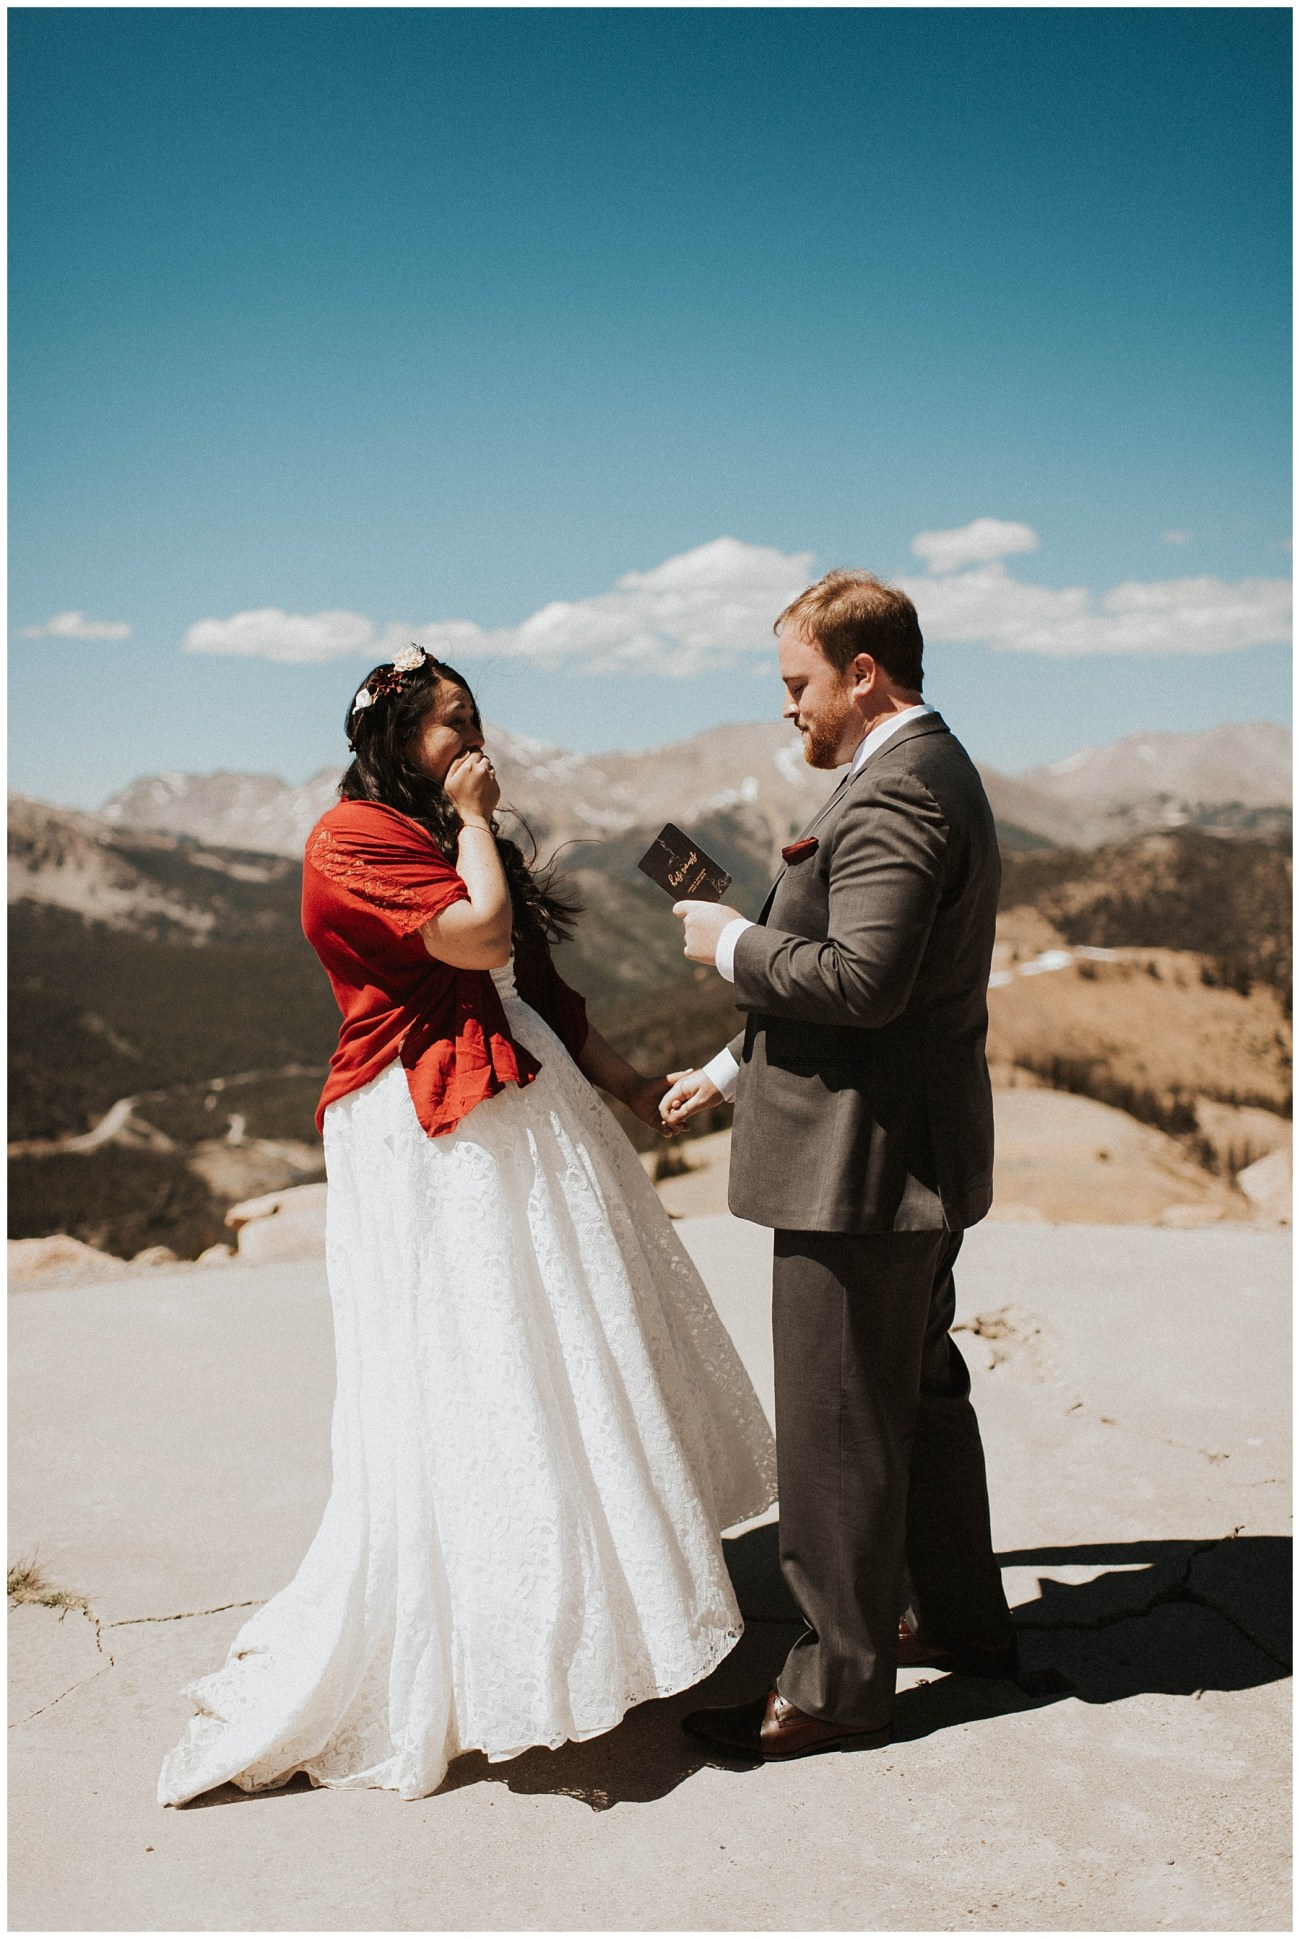 d074af9e9c Ben + Lainee // Desert Colorado Wedding - Lauren F.otography ...